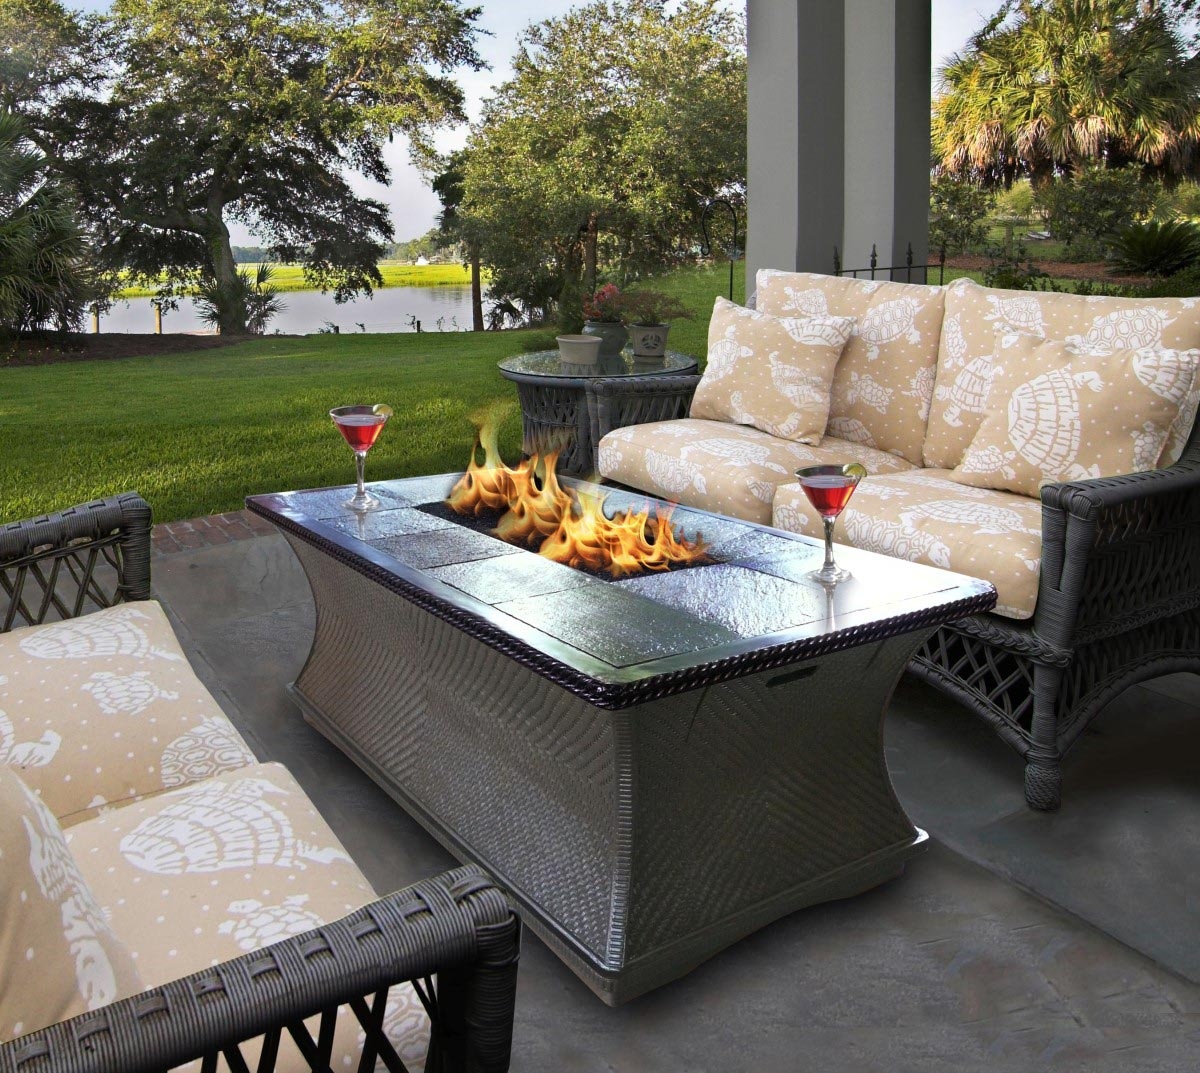 DIY Propane Fire Pit Table